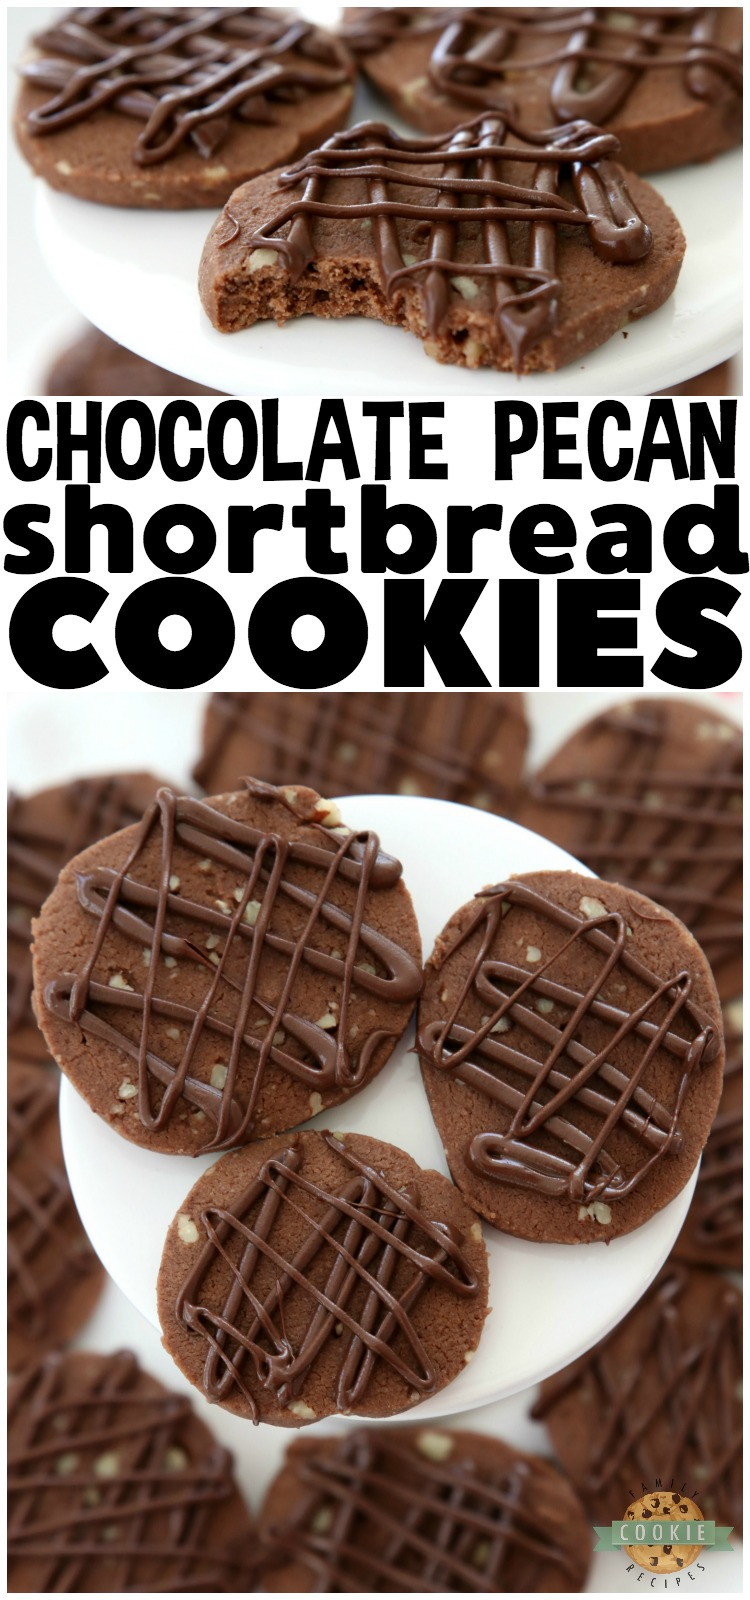 Chocolate Pecan Shortbread Cookies made by adding chopped pecans to our buttery chocolate shortbread then drizzling them with melted chocolate. These incredible shortbread cookies melt in your mouth and have the best chocolate flavor! #COOKIES #shortbread #butter #baking #chocolate #pecan #Christmas #cookie #recipe from FAMILY COOKIE RECIPES